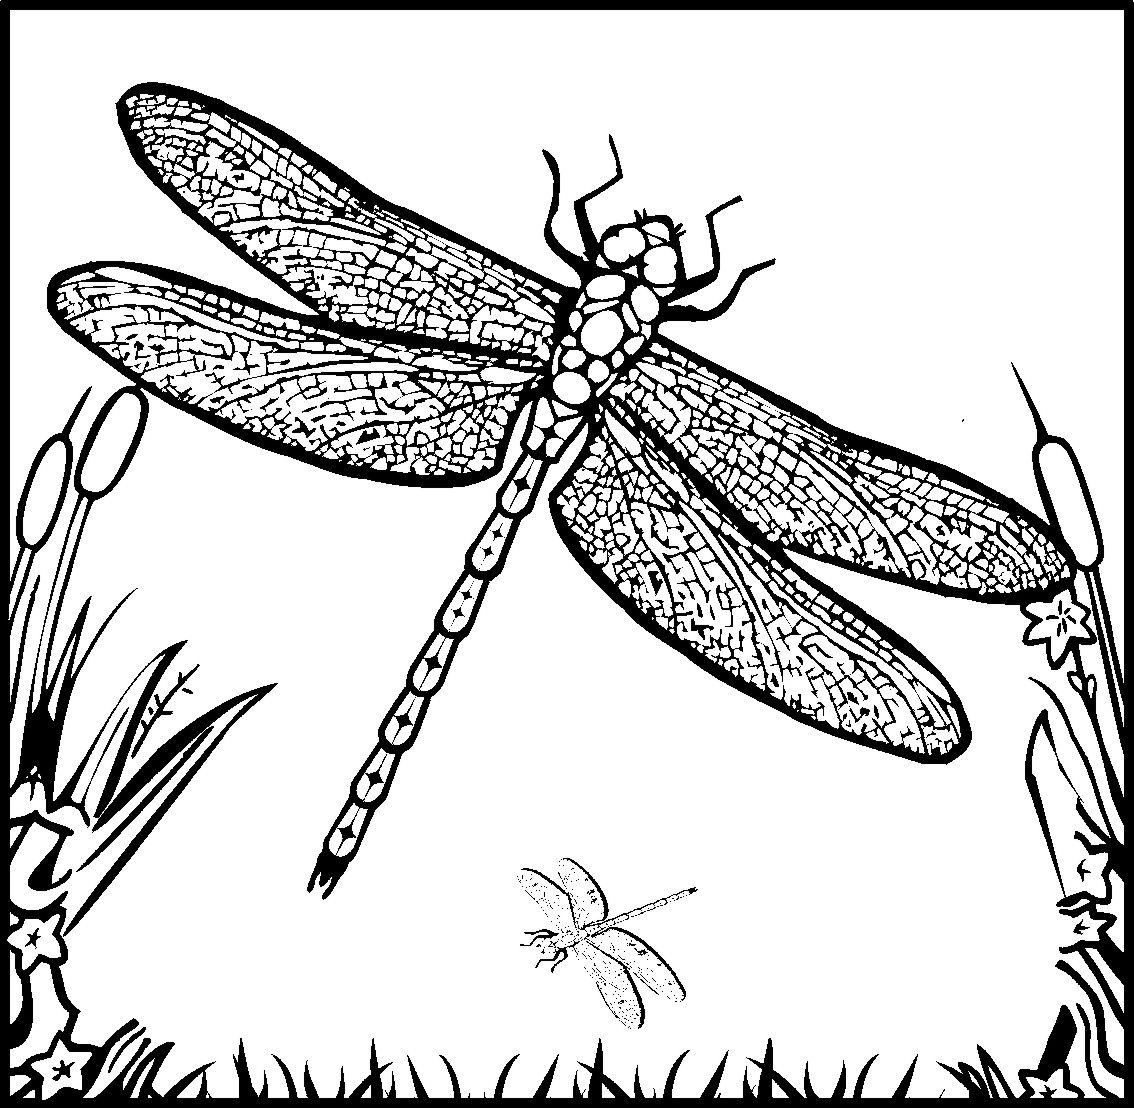 dragonflies coloring pages Detailed Coloring Pages For Adults | DRAGONFLY AND FAIRY COLORING  dragonflies coloring pages